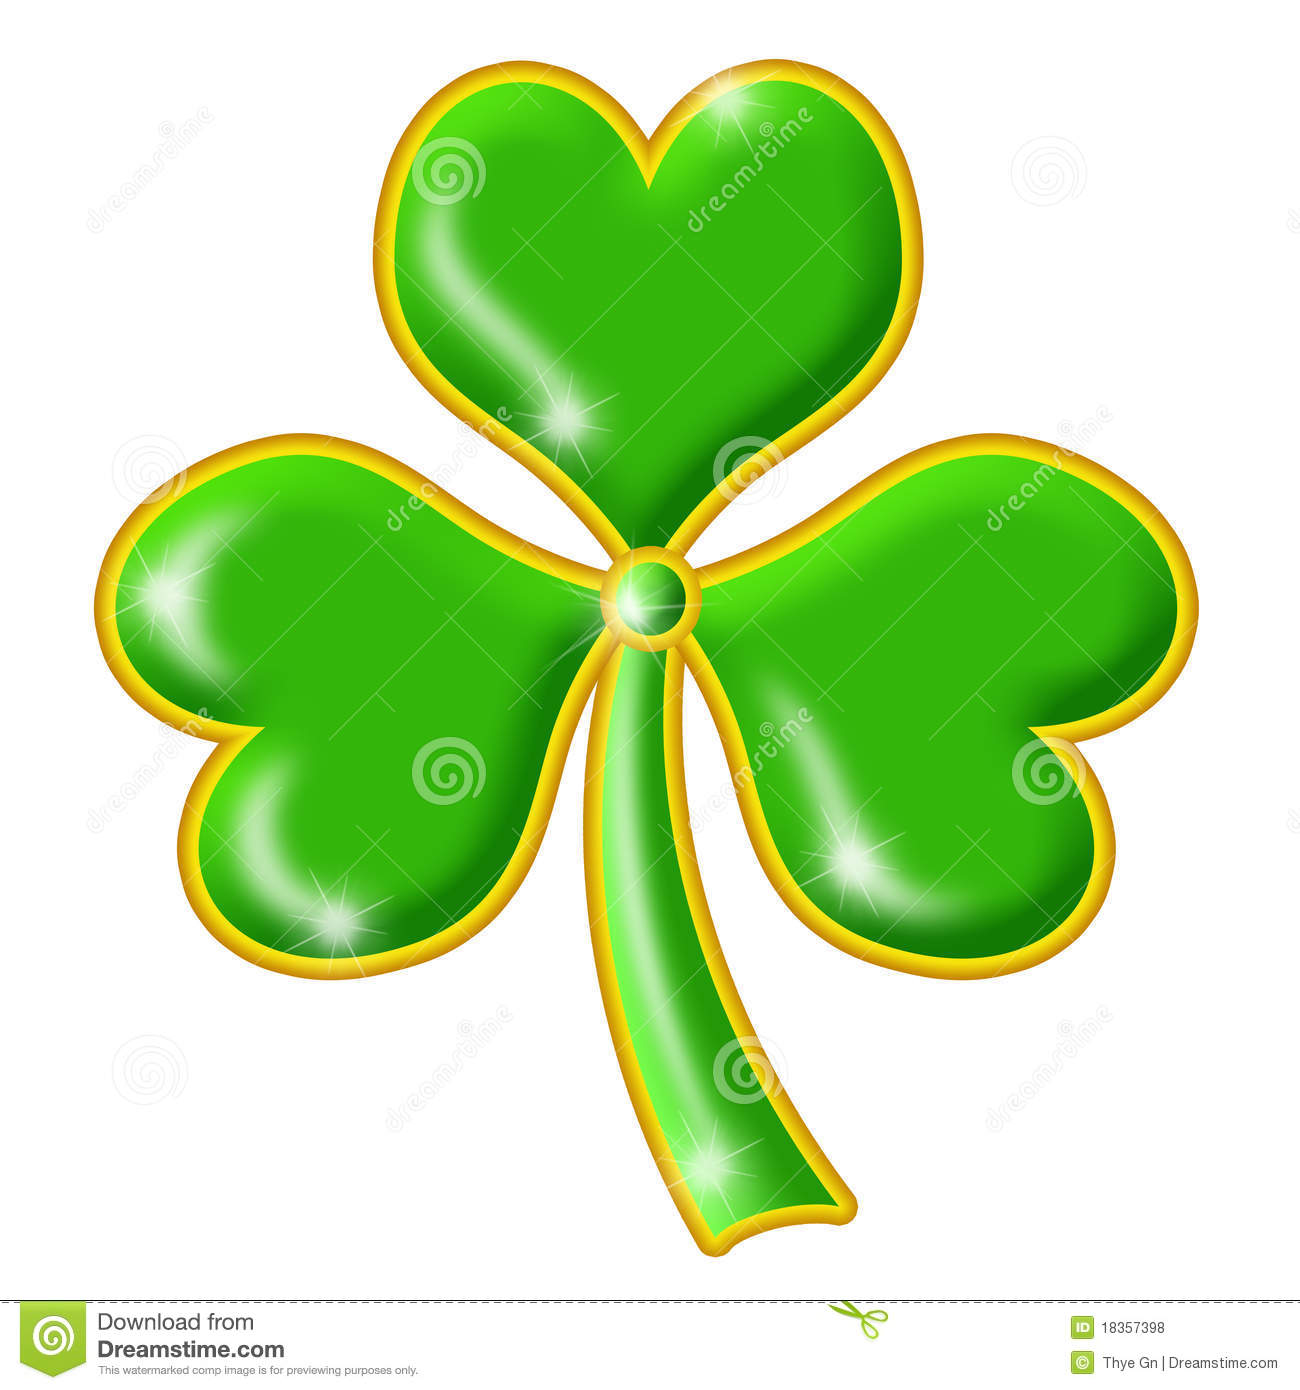 Shimmering Green Shamrock With Gold Trim Royalty Free Stock Photos ...